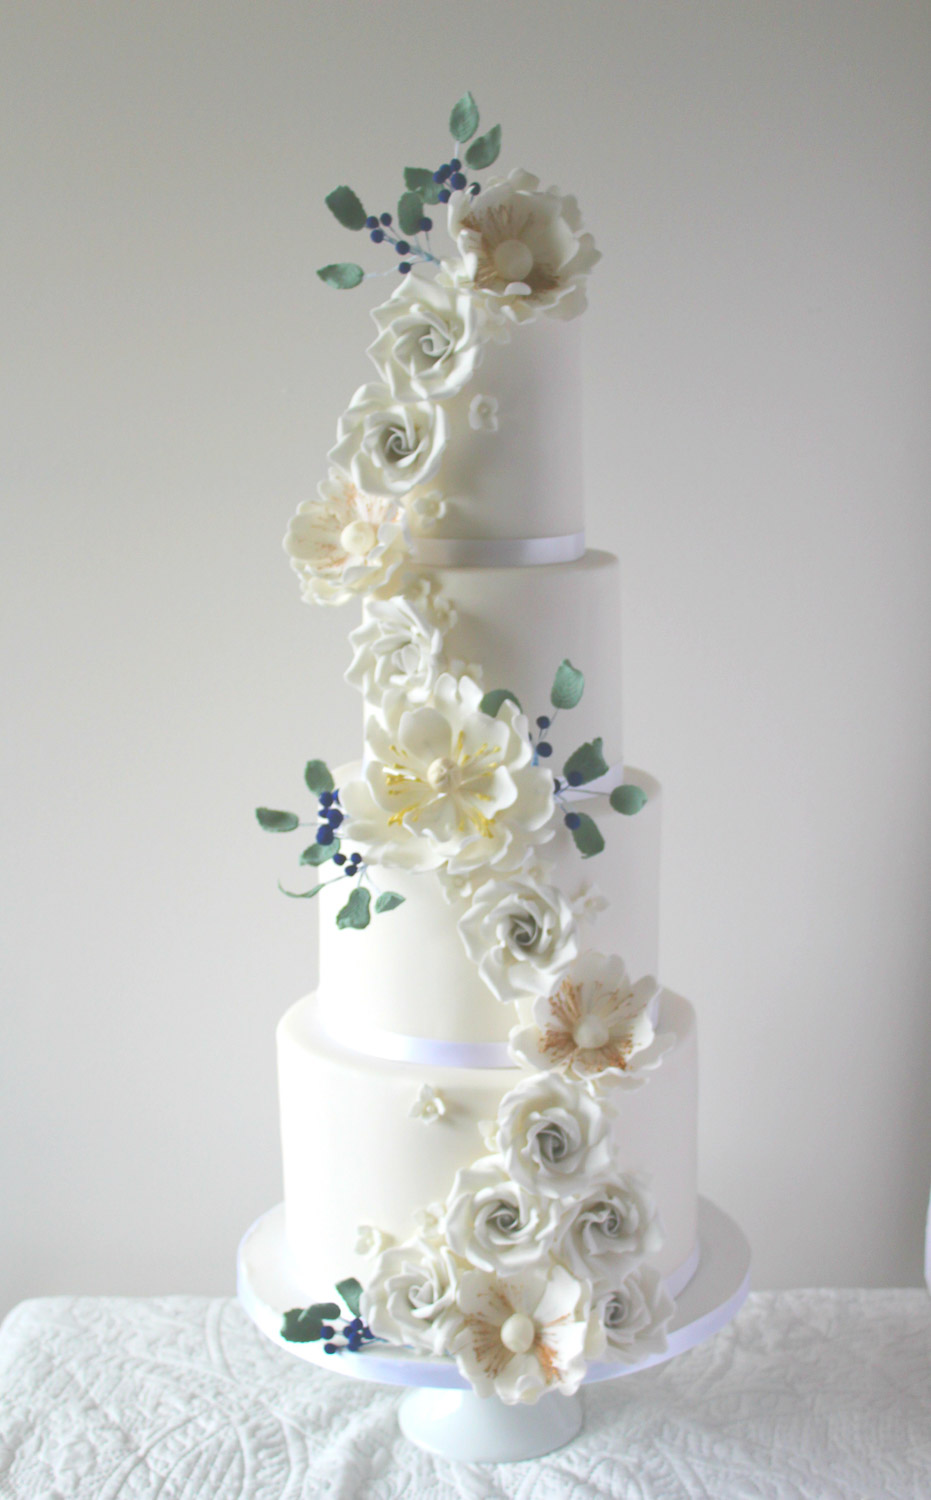 Rosewood Wedding Cakes | Artistic & Elegant Wedding Cakes | Glasgow ...